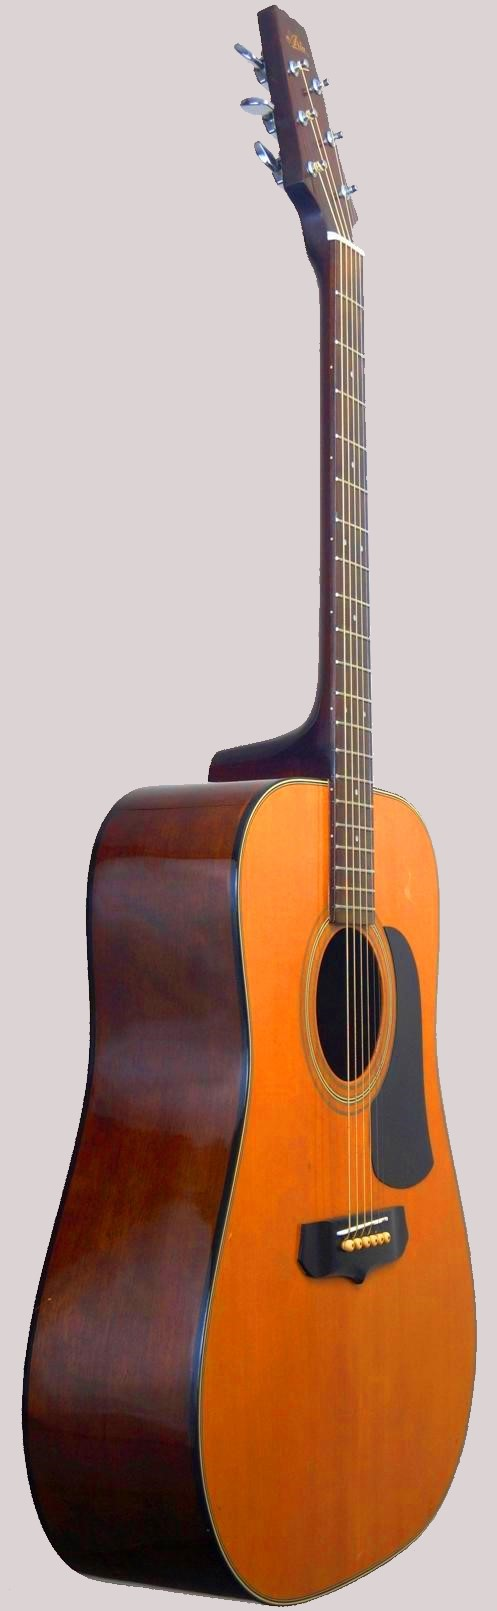 Japanese made spruce top 1986 aria guitar at Ukulele Corner